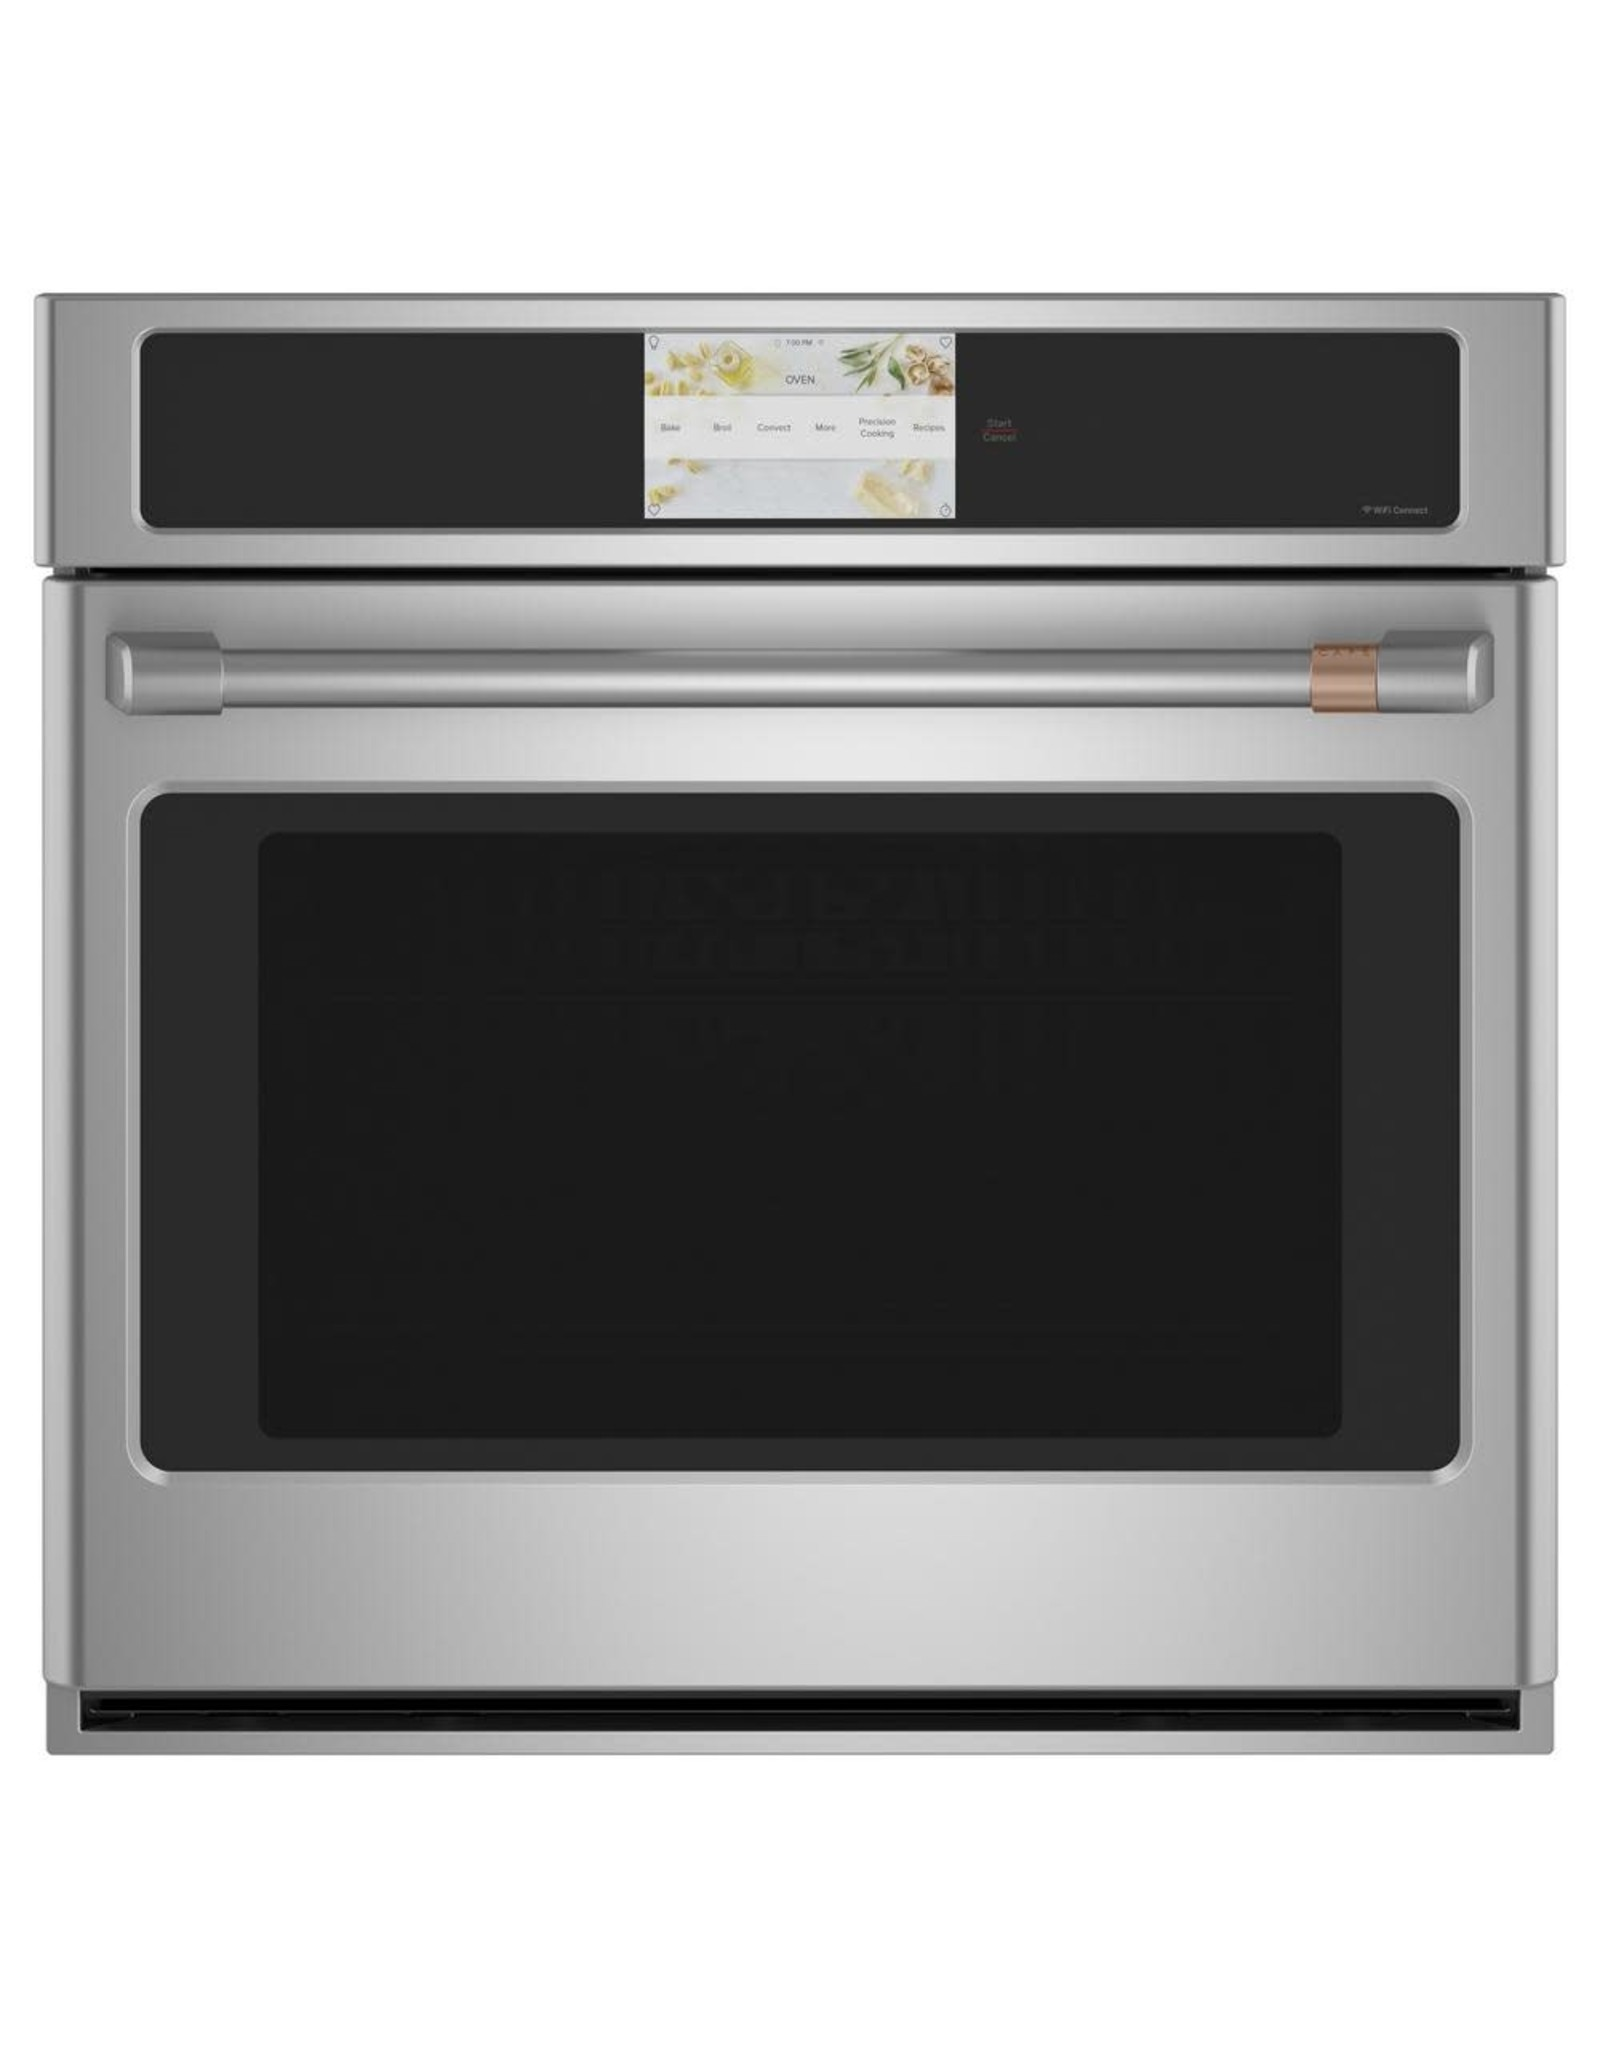 GE Cafe' CTS70DM2NSS 30 in. Smart Single Electric Wall Oven with Convection Self-Cleaning in Platinum Glass